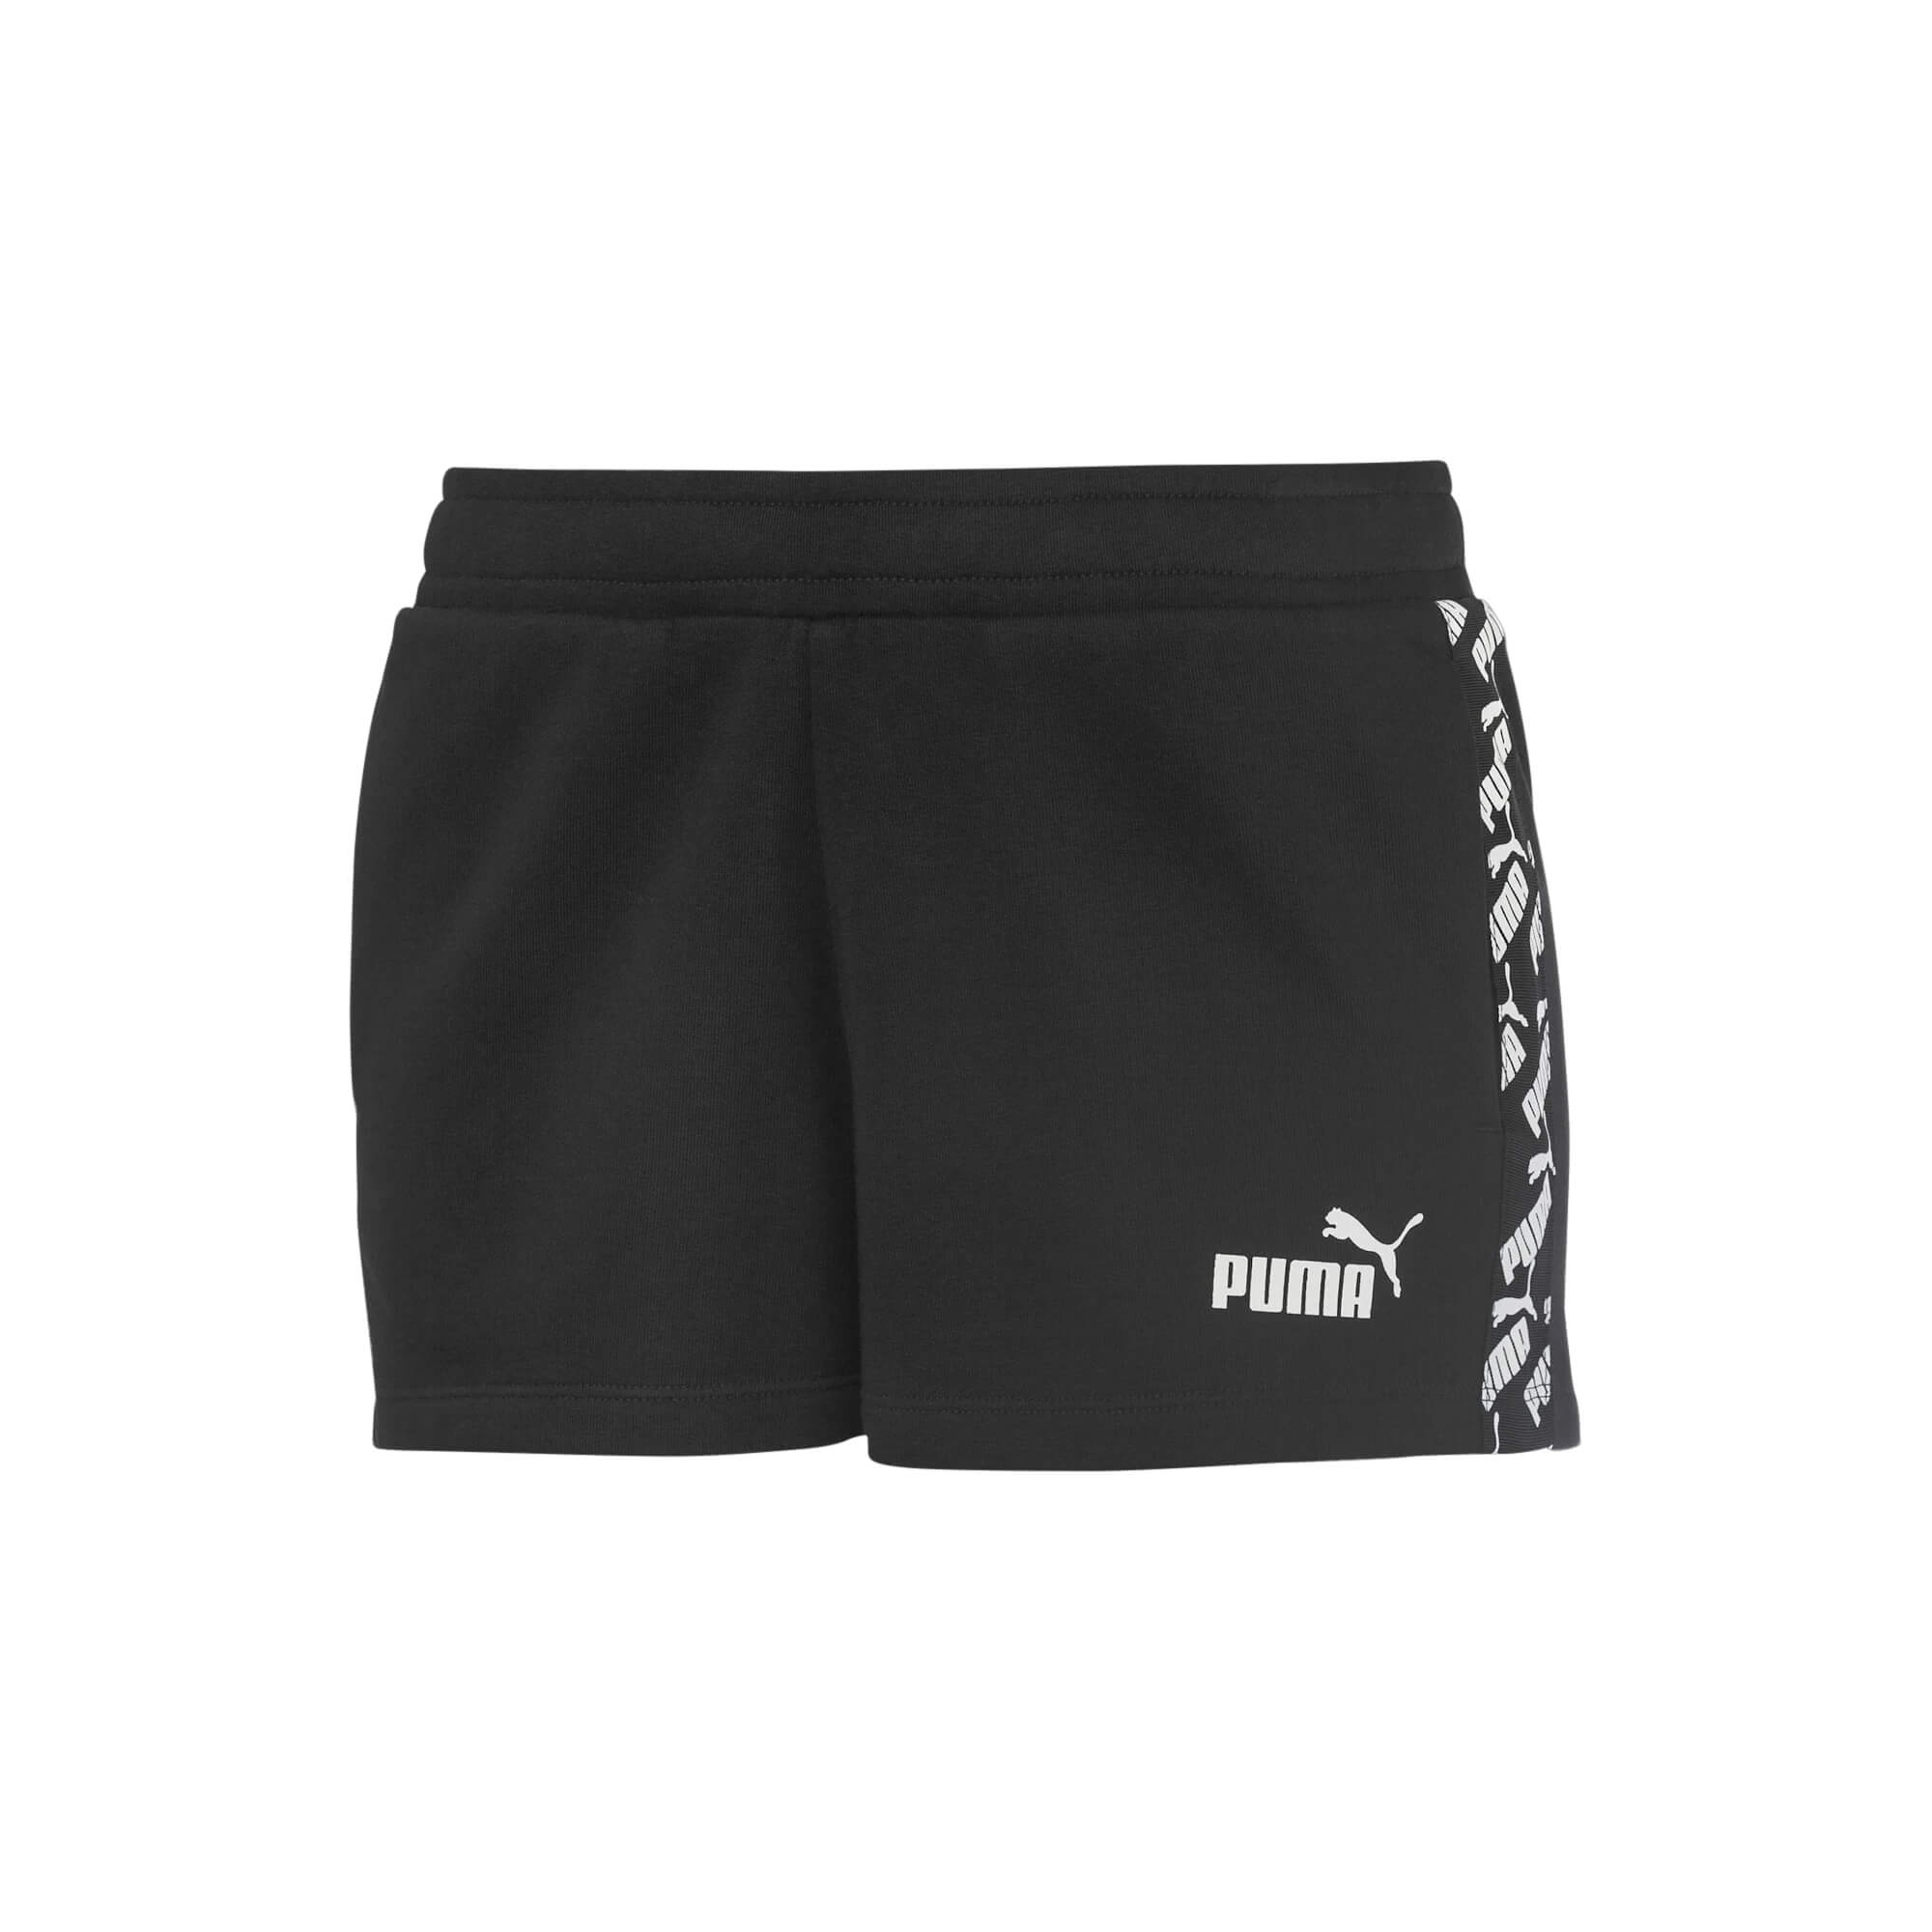 Amplified 2 Shorts